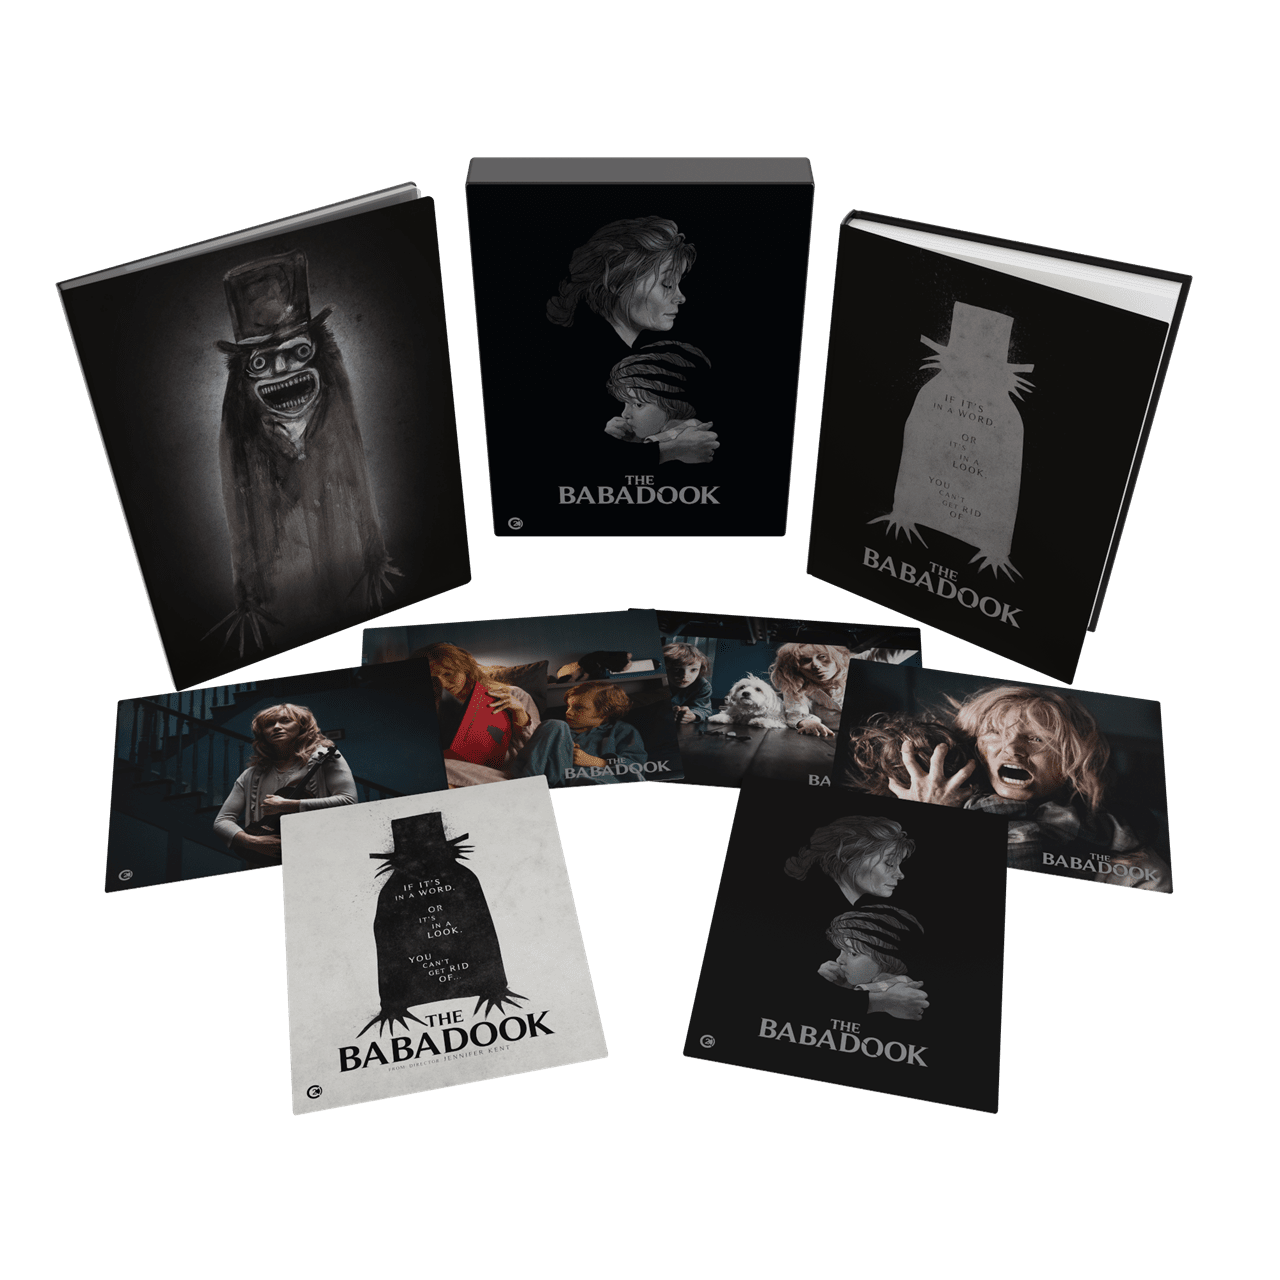 The Babadook Limited Collector's Edition - 1